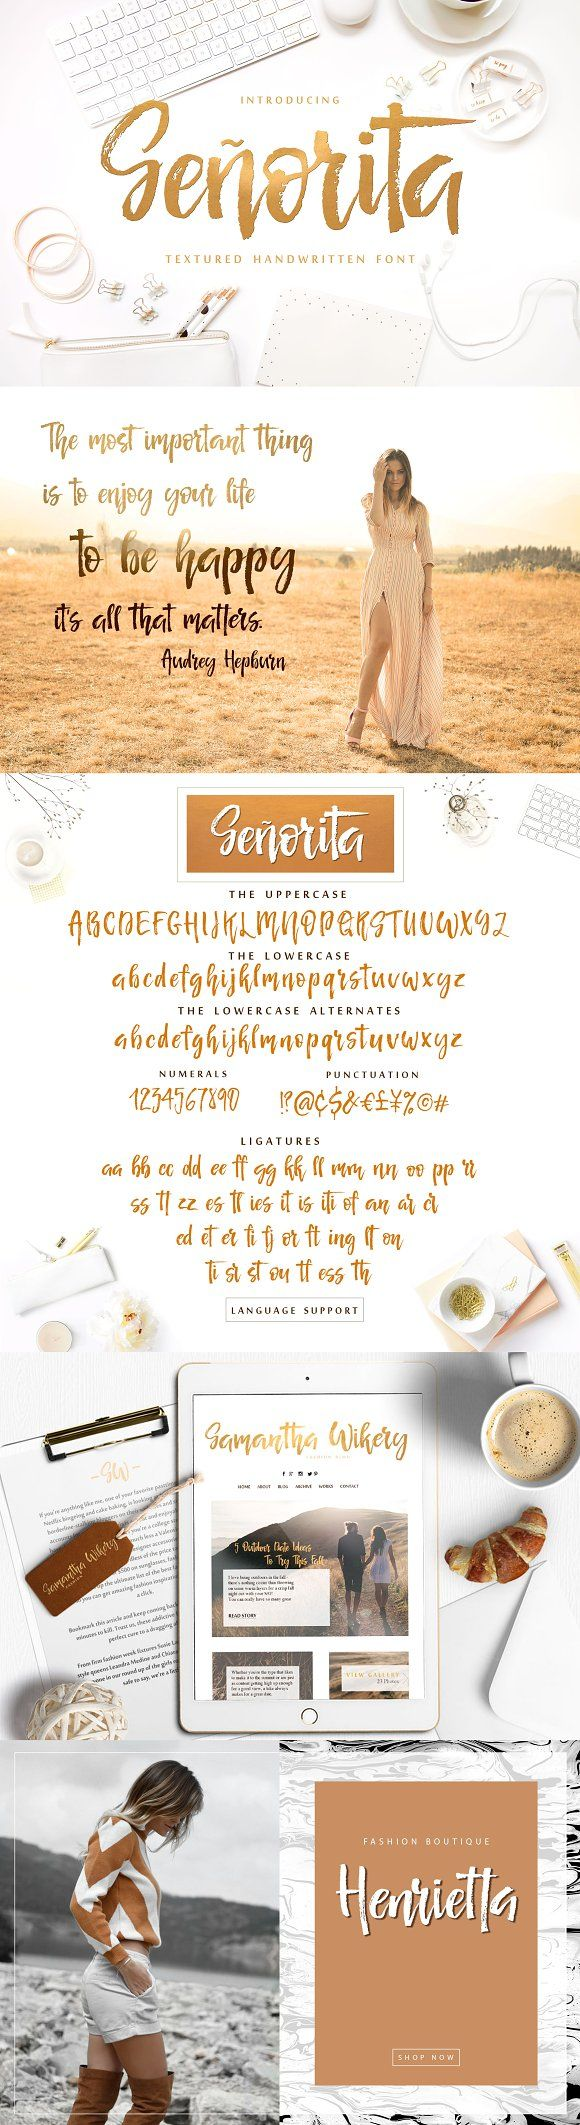 Señorita Handwritten Textured Font by IraDvilyuk Introducing the new hand drawn script Señorita. This font was hand written with dry brush and will look great on branding design, posters, apparel, for logotype, website header, fashion design, wedding card design and any more. affiliate